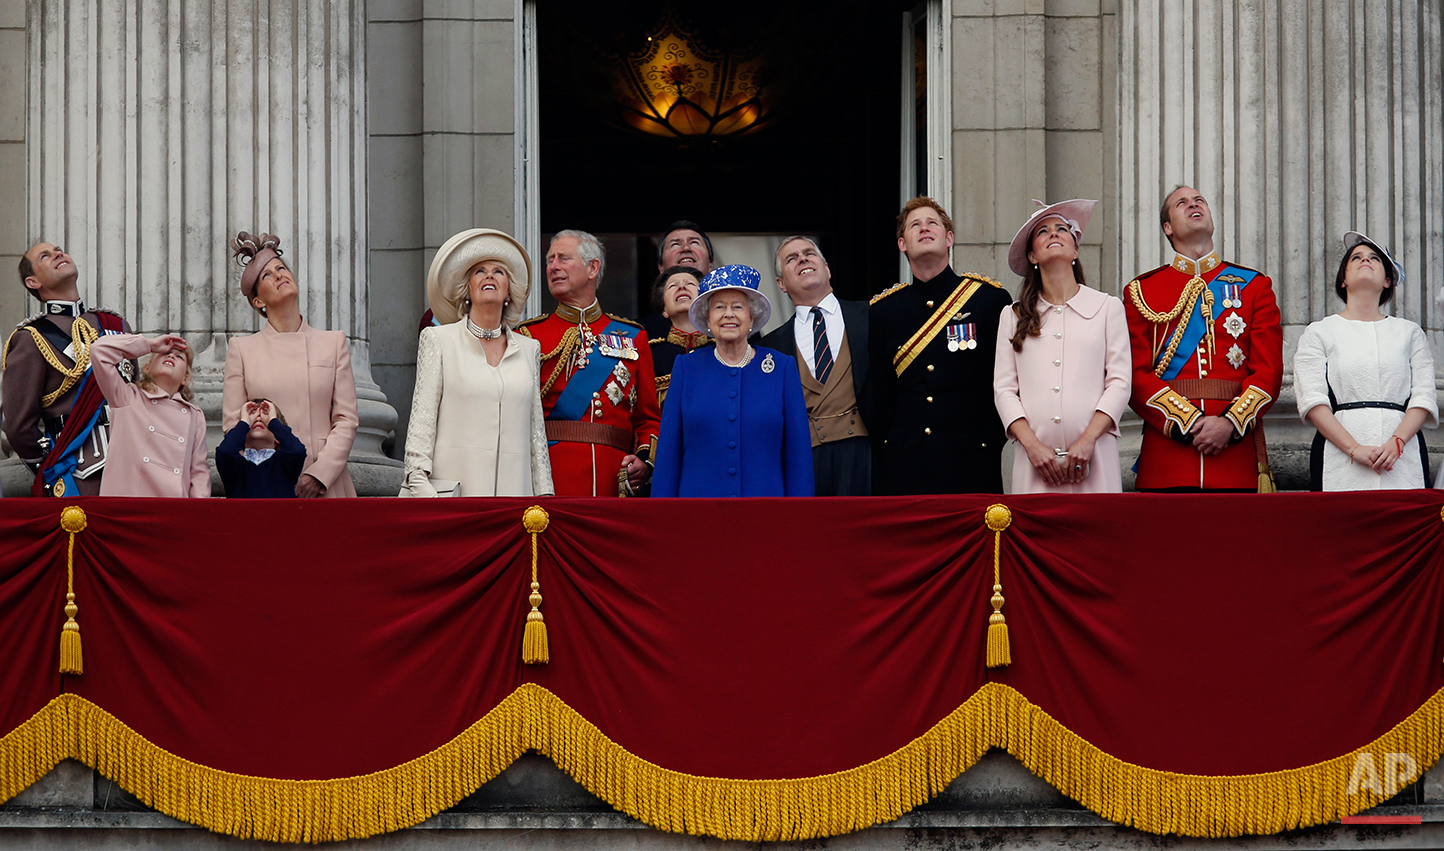 """Britain's Queen Elizabeth II, centre, surrounded by members of her family, watch a Royal Air Force fly pass by, on the balcony of Buckingham Palace, during the Trooping The Colour parade, in London, Saturday, June 15, 2013. Queen Elizabeth II celebrated her birthday with traditional pomp and circumstance _ but without her husband by her side.  Prince Philip remains in the hospital, recovering from exploratory abdominal surgery. The queen invited her cousin, the Duke of Kent, to accompany her in a vintage carriage. Other royals — including Prince Harry and the Duchess of Cambridge — joined in the celebration Saturday. More than 1,000 soldiers, horses and musicians are taking part in the parade known as """"Trooping the Color,"""" an annual ceremony. From left, Prince Edward, the Earl of Wessex, Lady Louise, James, Viscount Severn, Sophie, the Countess of Wessex, Camilla, The Duchess of Cornwall, Prince Charles, Anne, the Princess Royal, Timothy Laurence,  Prince Andrew, Duke of York, Prince Harry, Kate, The Duchess of Cambridge, Prince William, Duke of Cambridge and Princess Eugenie.  (AP Photo/Sang Tan)"""